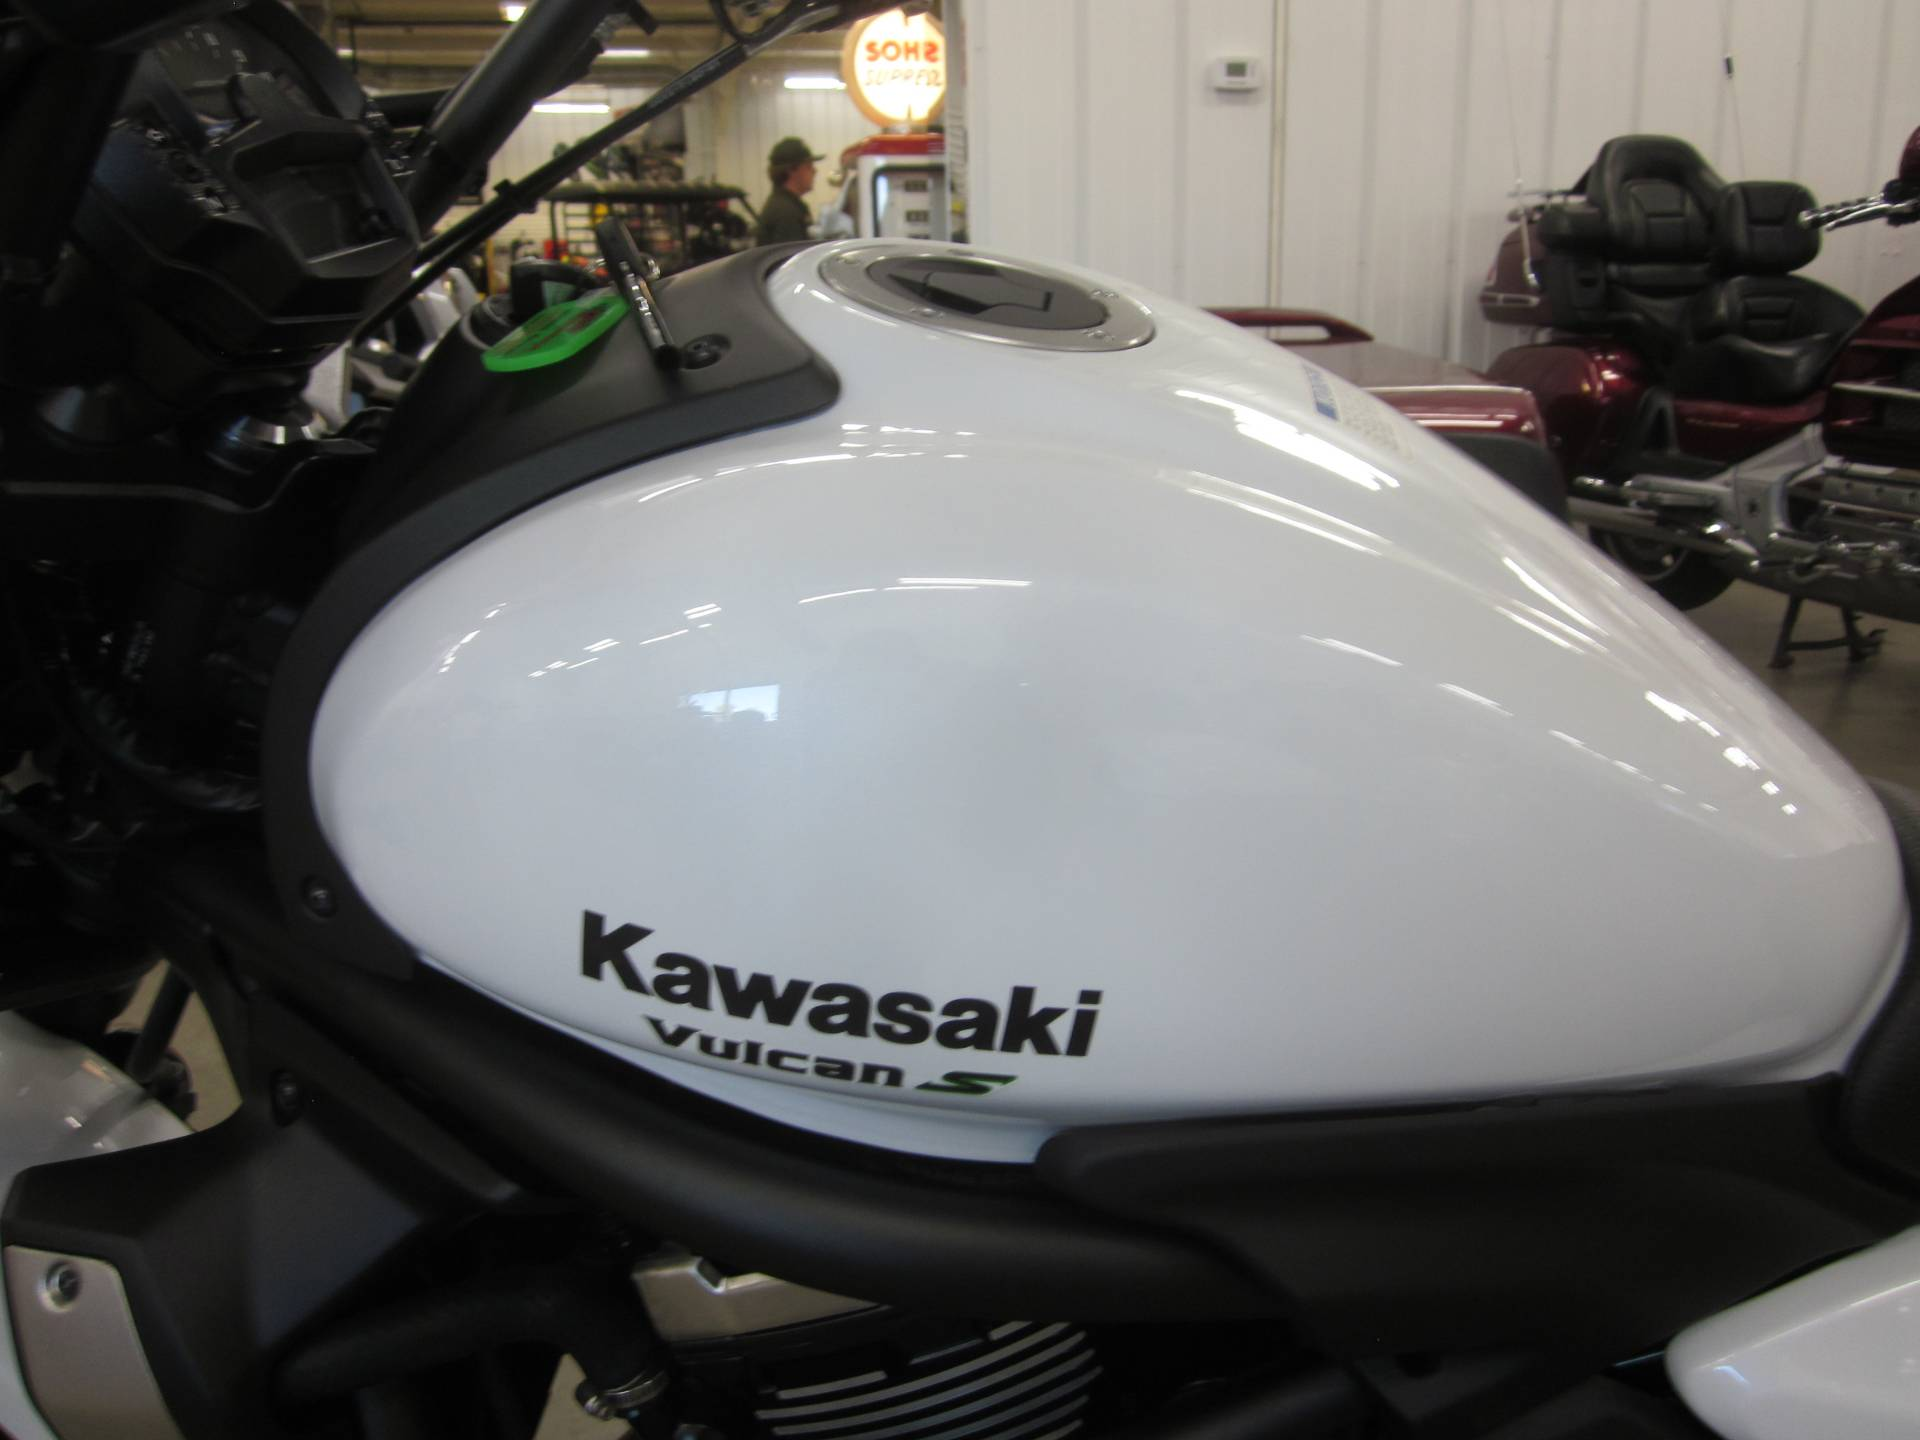 2015 Kawasaki Vulcan S in Lima, Ohio - Photo 10